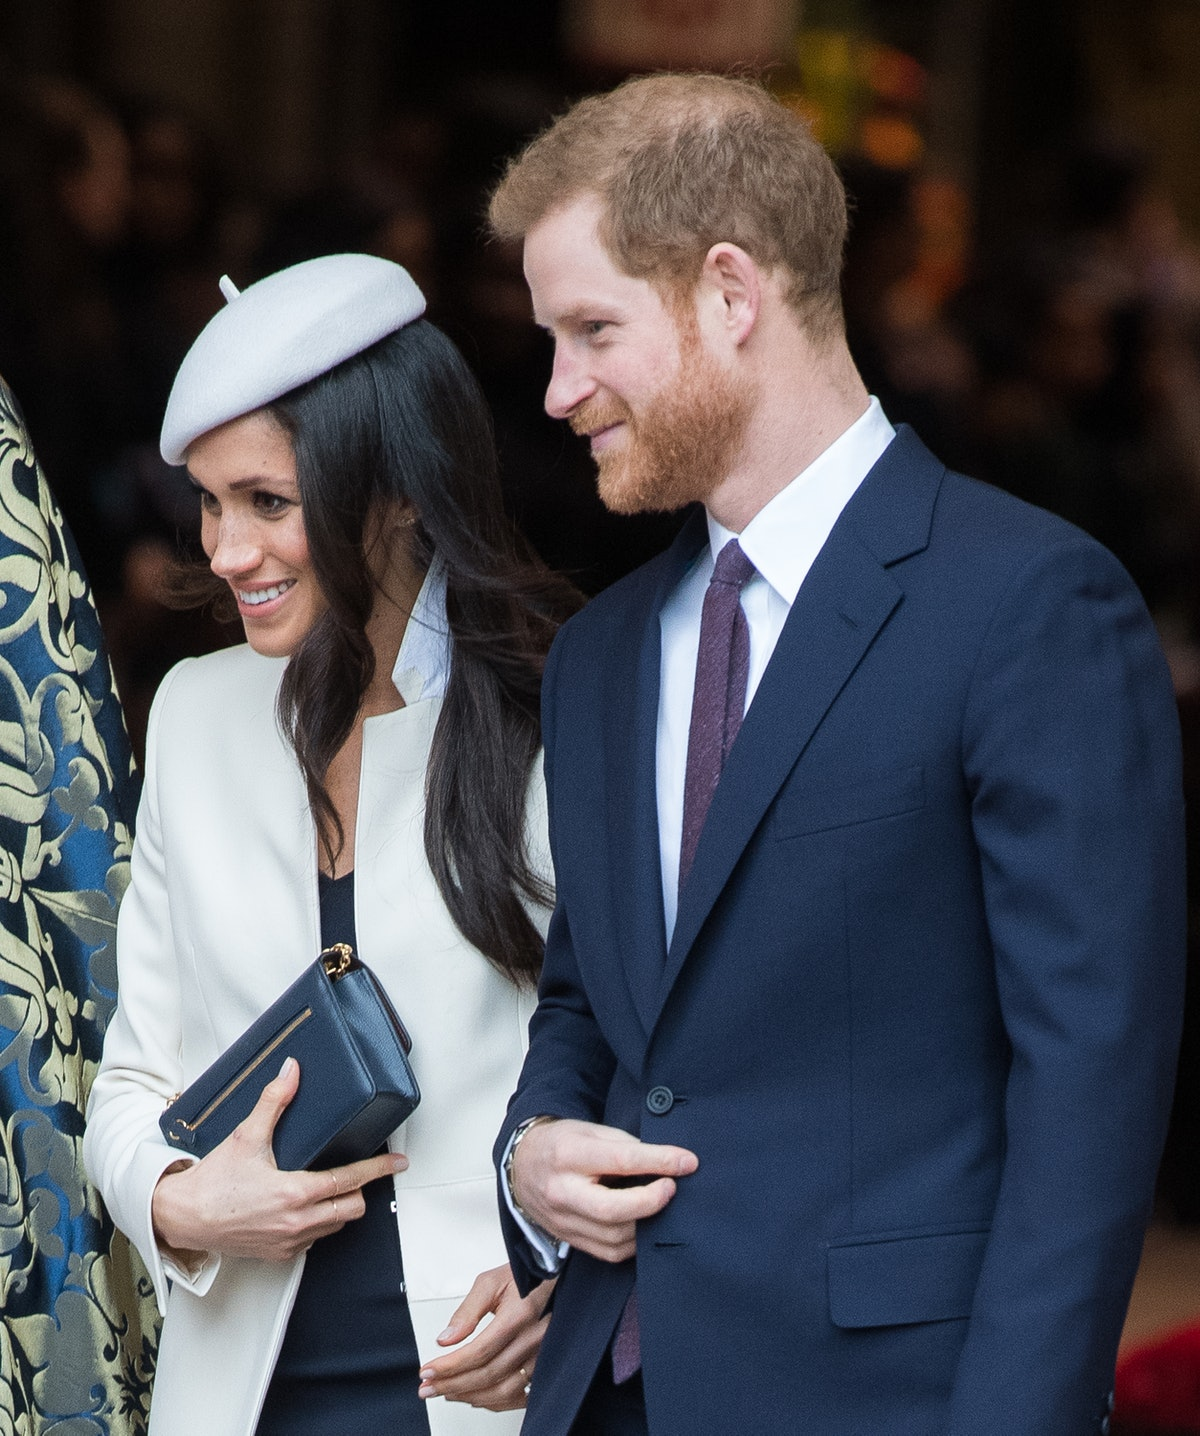 """Meghan Markle's body language was """"slightly possessive"""" when she started publicly dating Prince Harr..."""